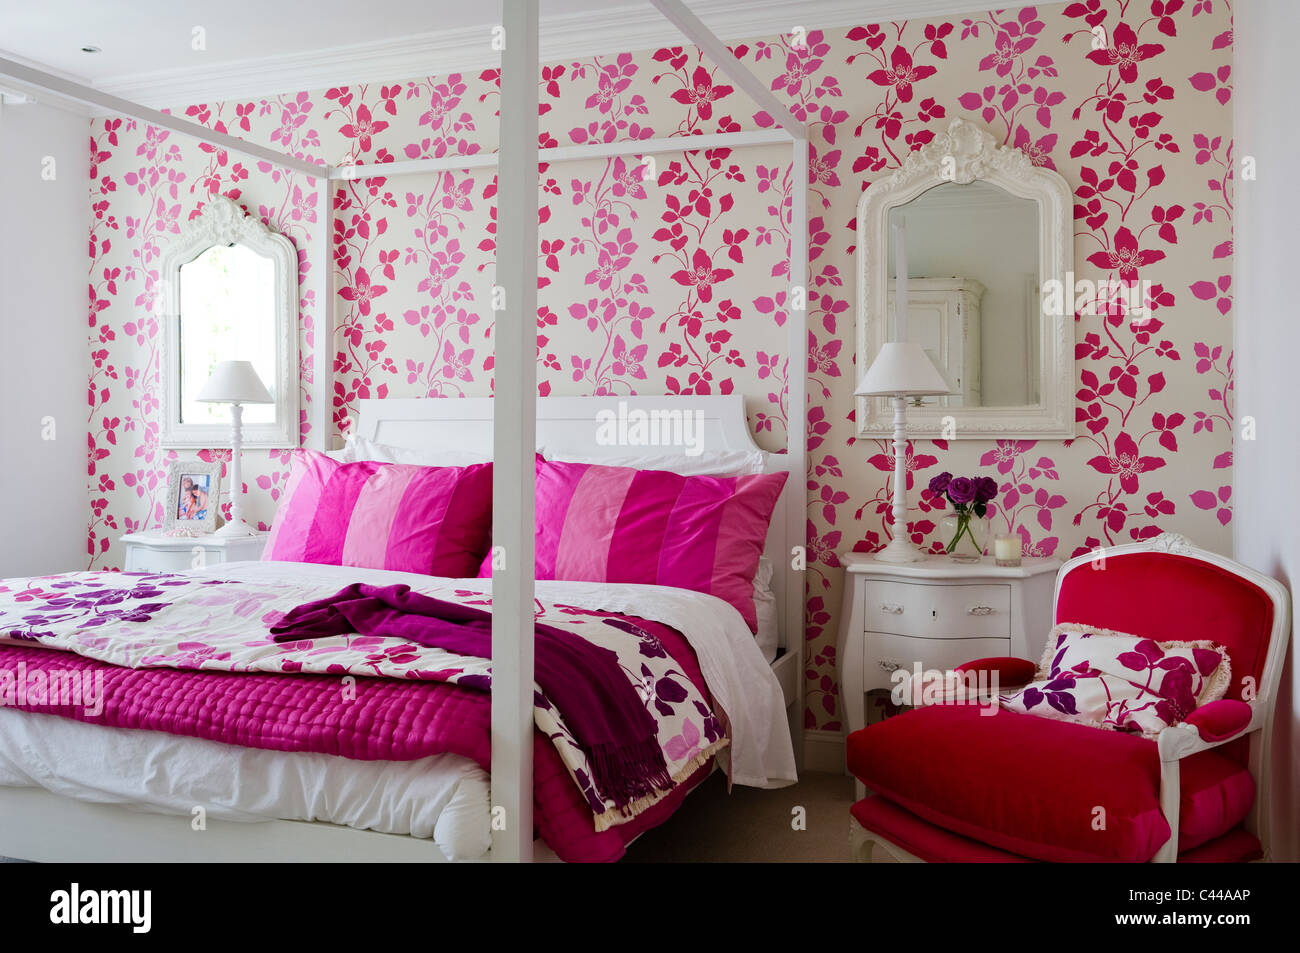 Pink Wallpaper For Bedroom Red Velvet Armchair In Bedroom With Fourposter Bed And Designers